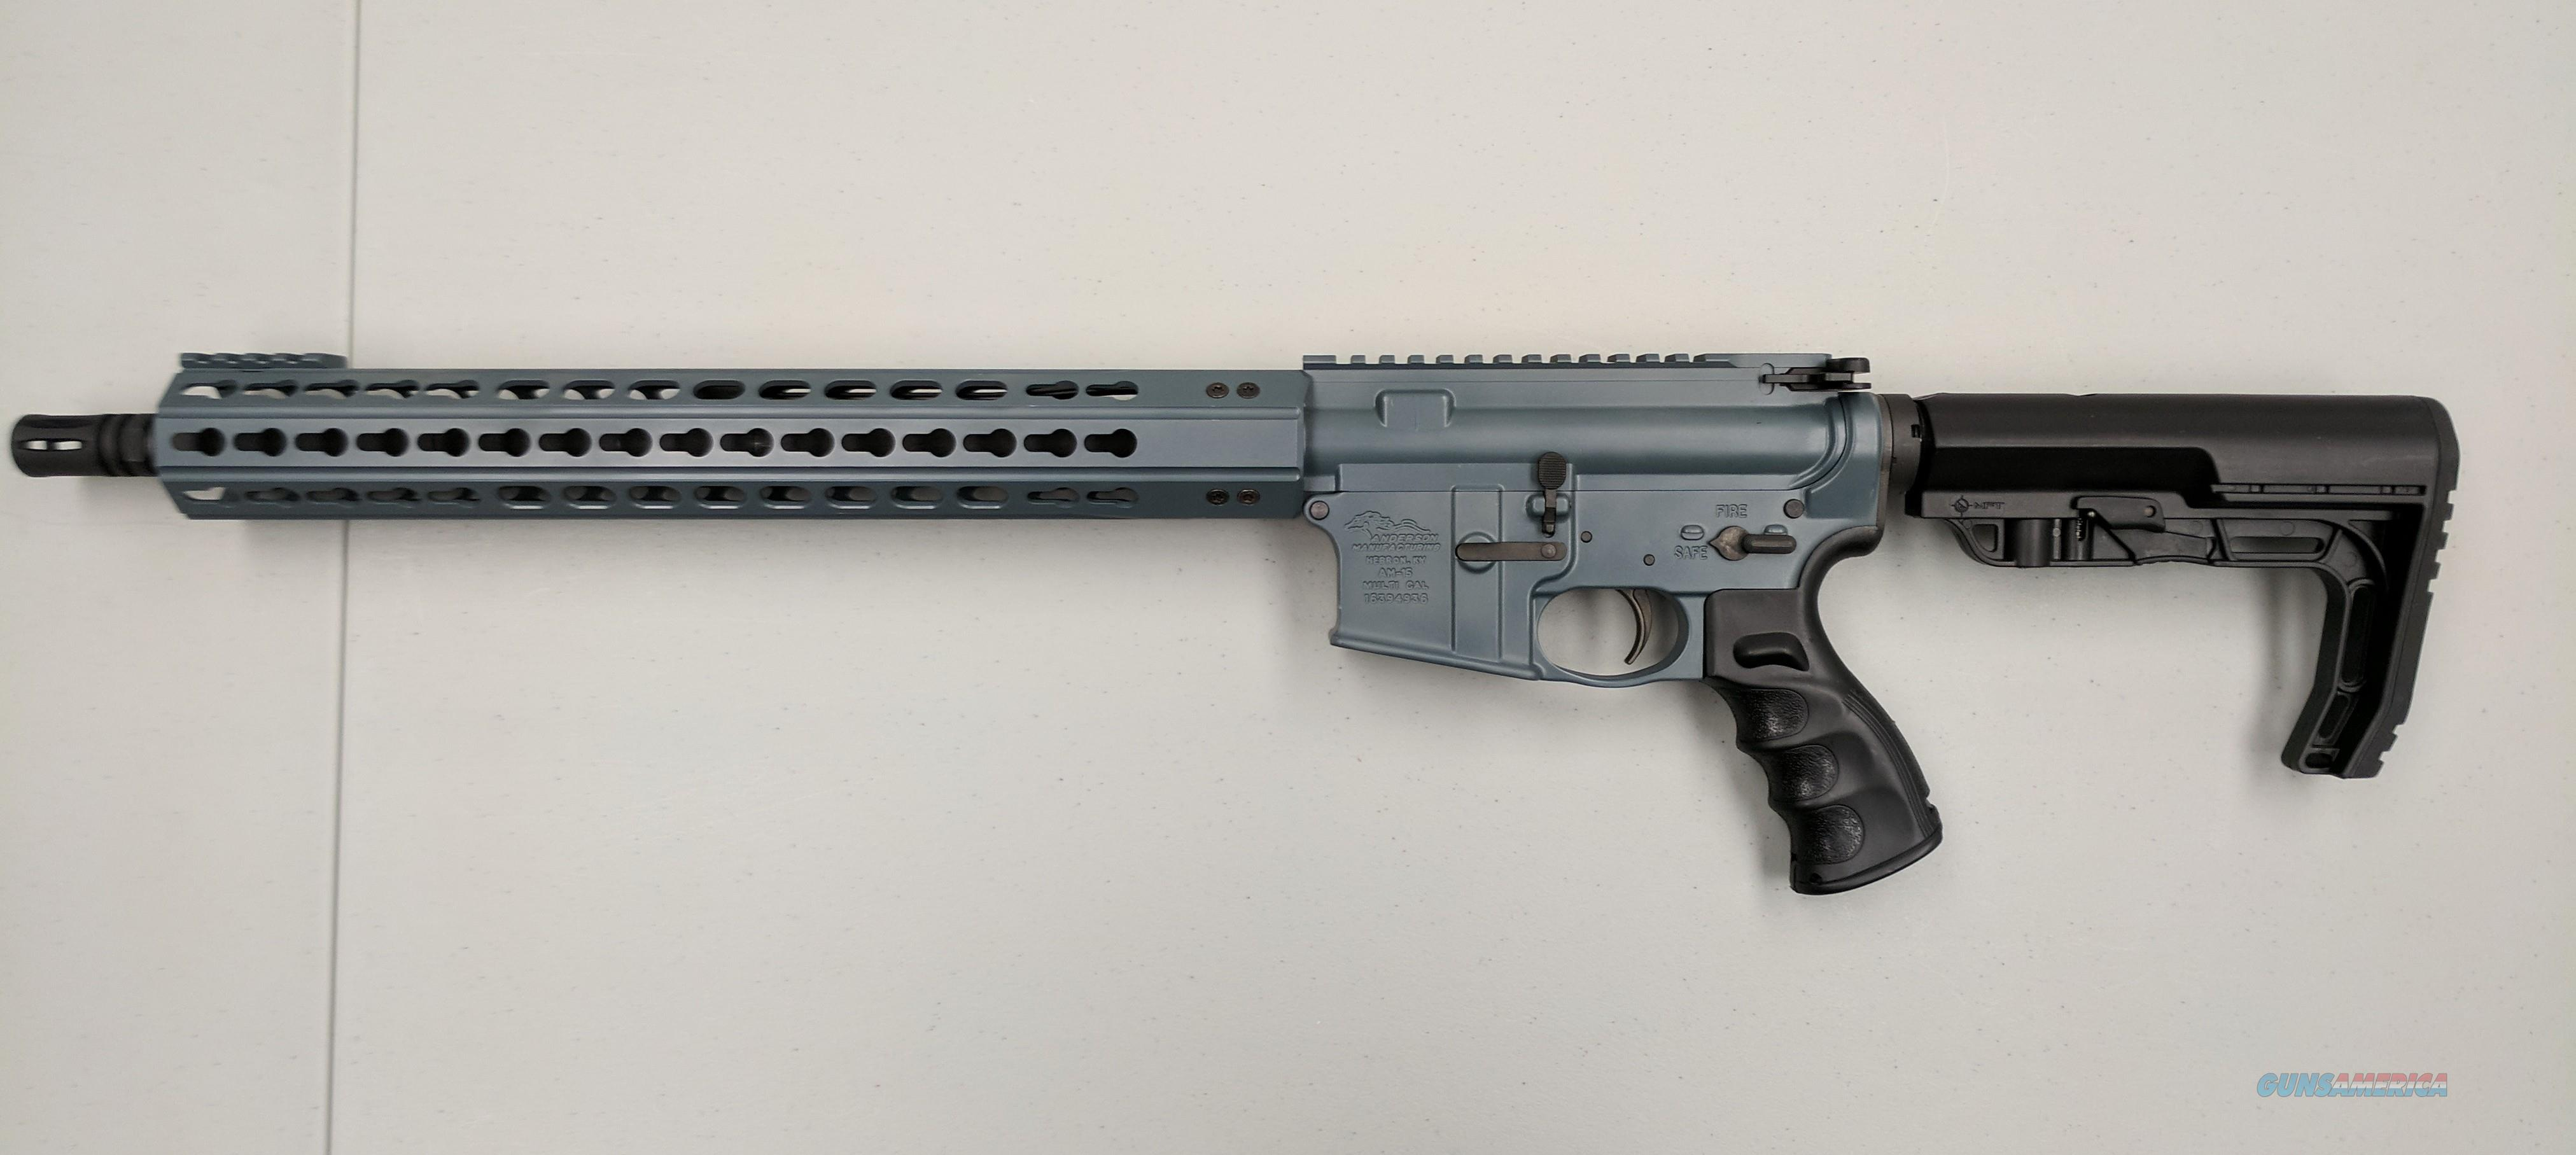 Anderson Cold War Blue AR-15  Guns > Rifles > AR-15 Rifles - Small Manufacturers > Complete Rifle